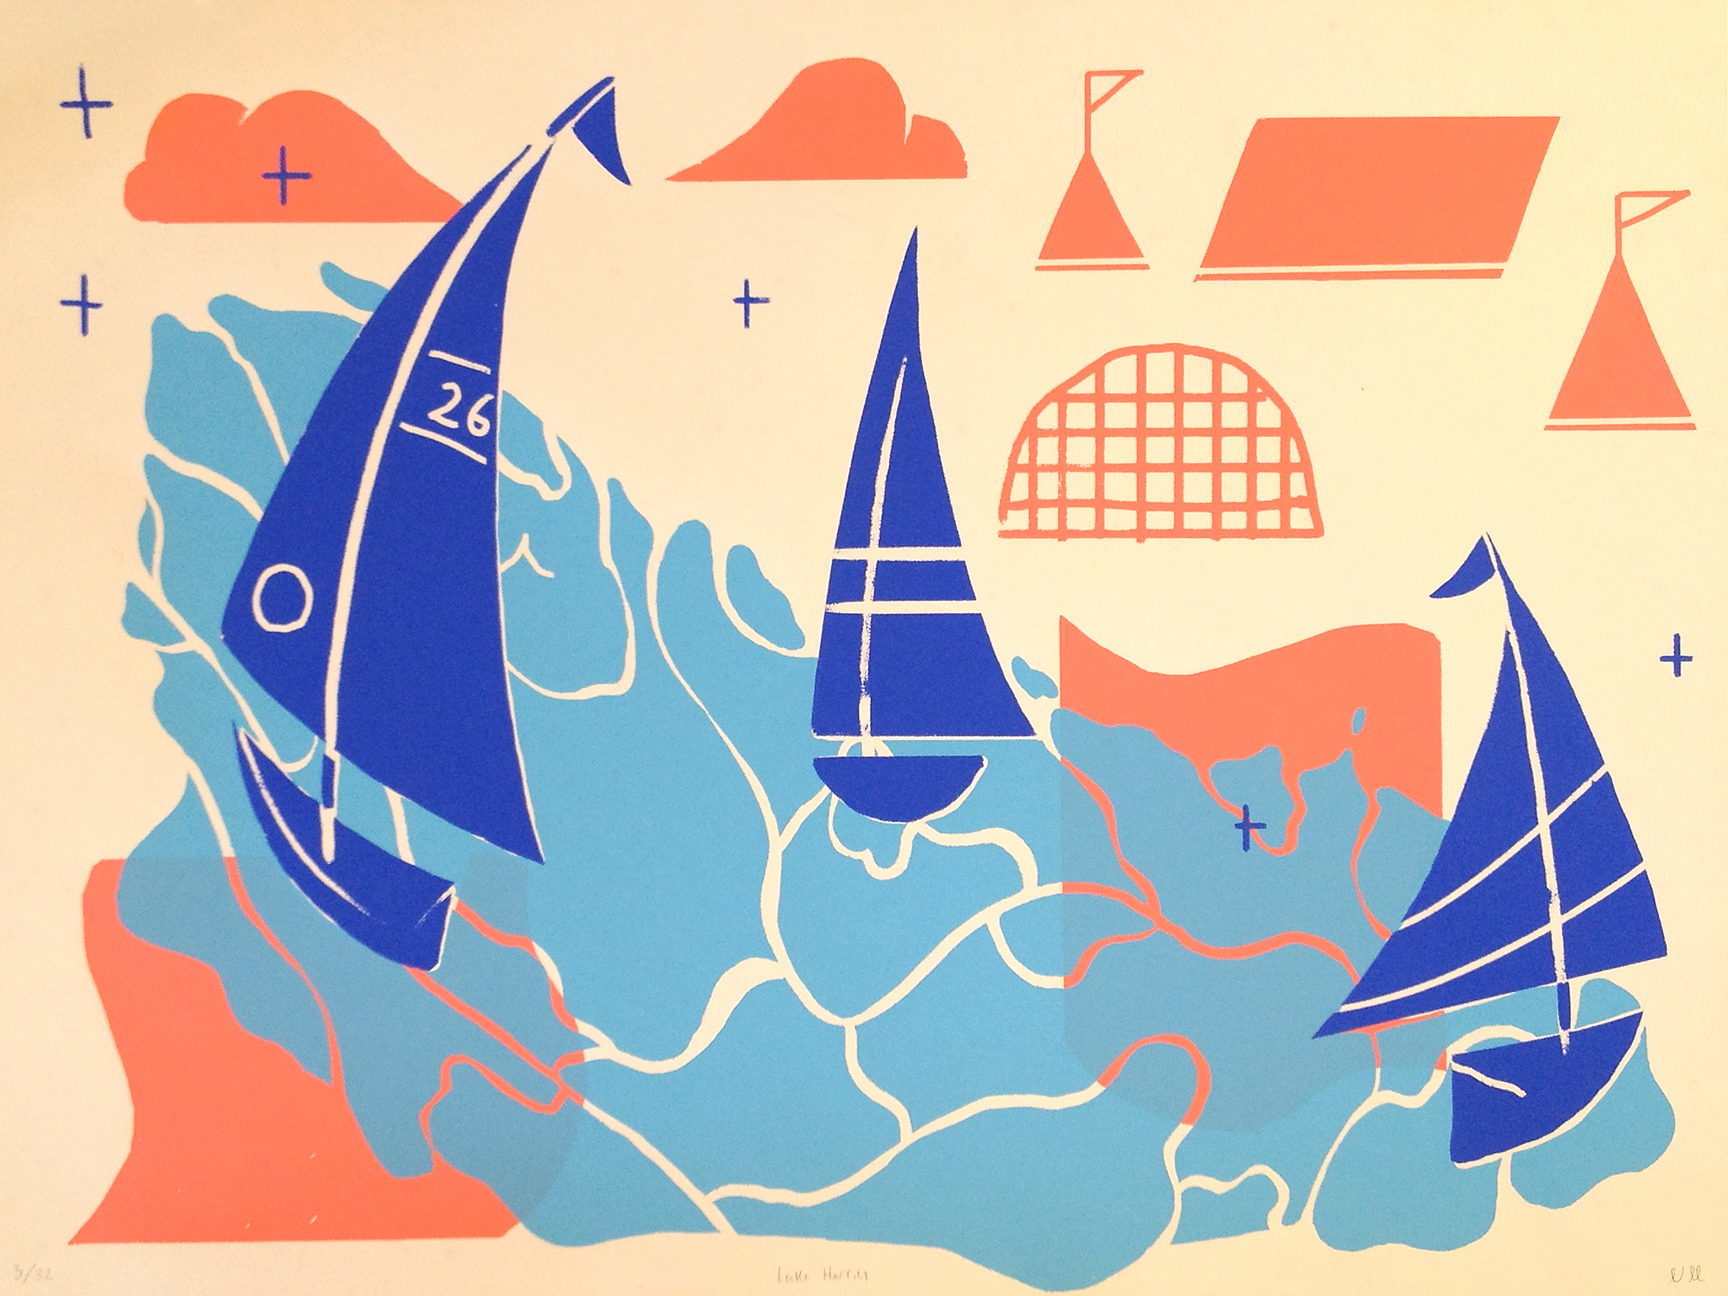 Sailing By poster by Nathan Motzko